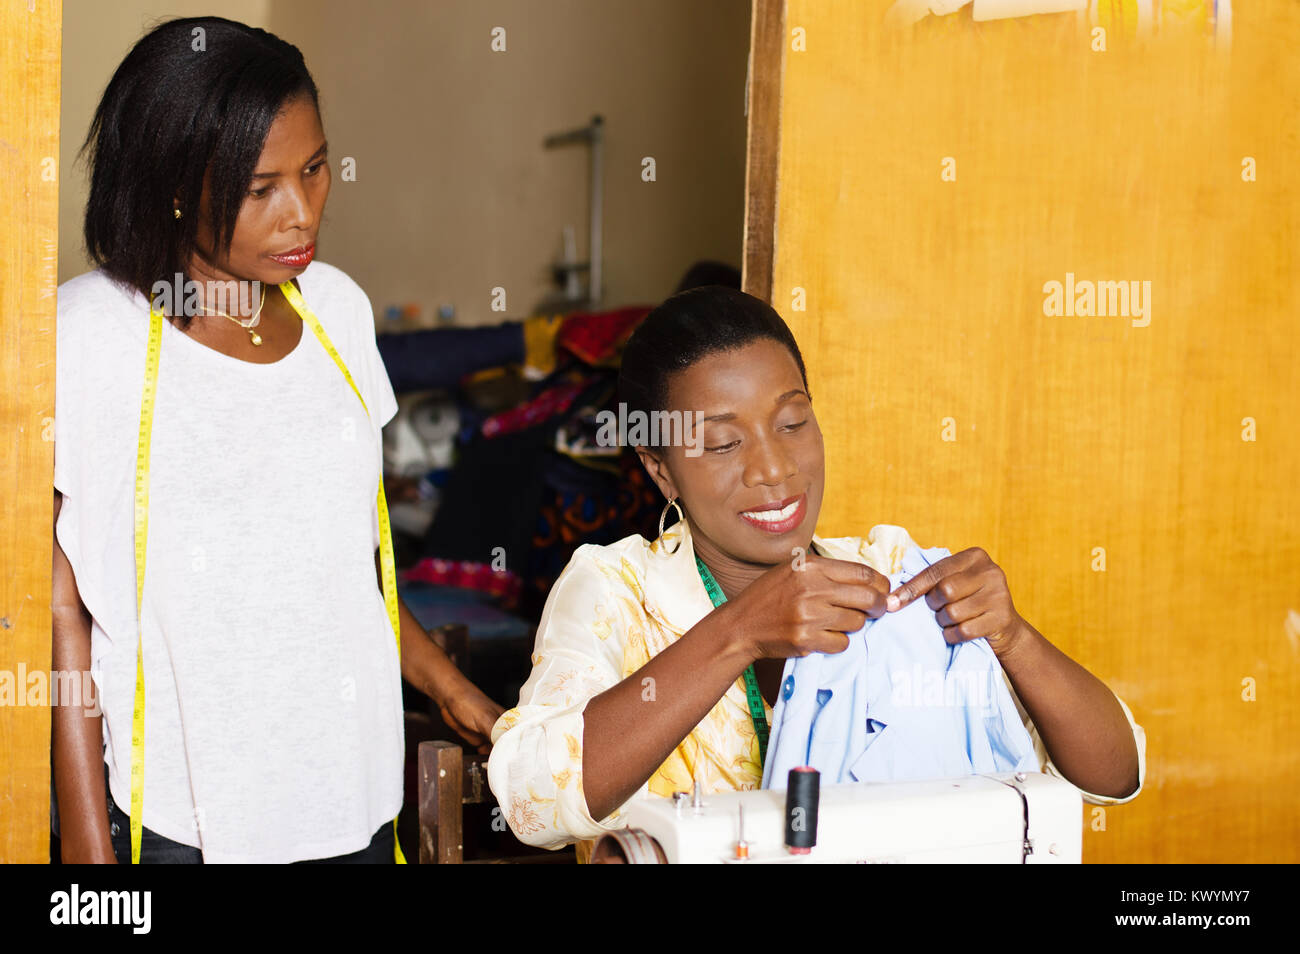 professional seamstress sews and student notes. - Stock Image